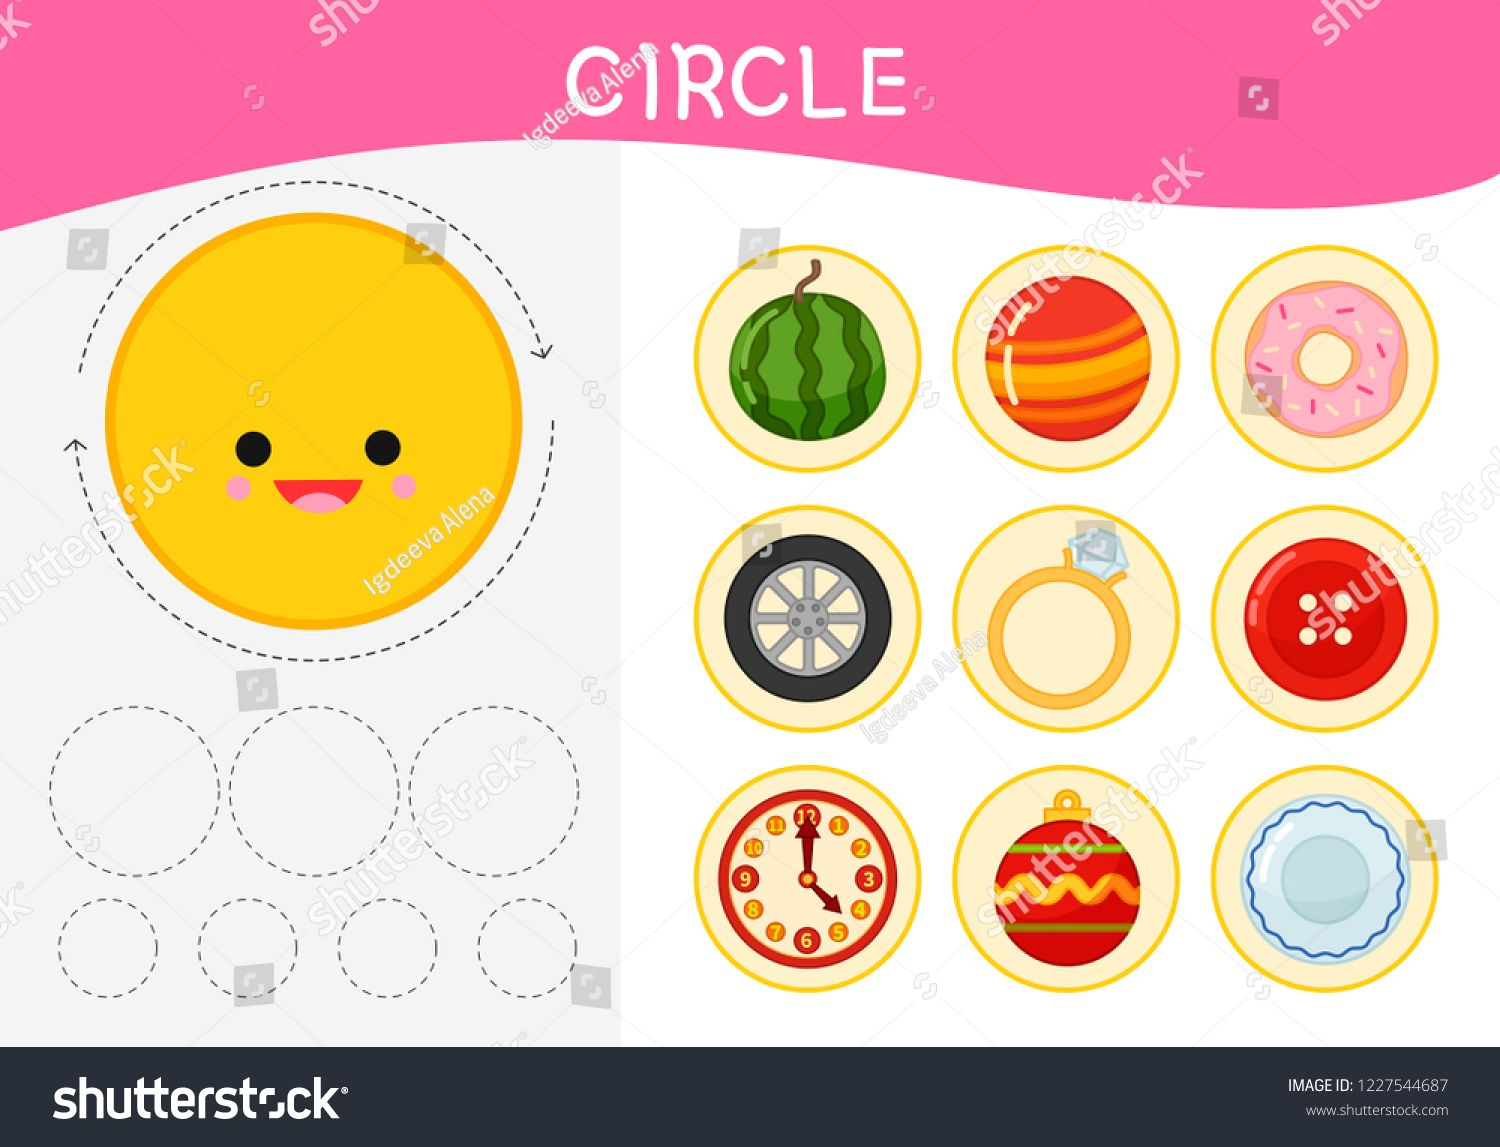 Worksheet For Kids Learning Forms A Set Of Objects In The